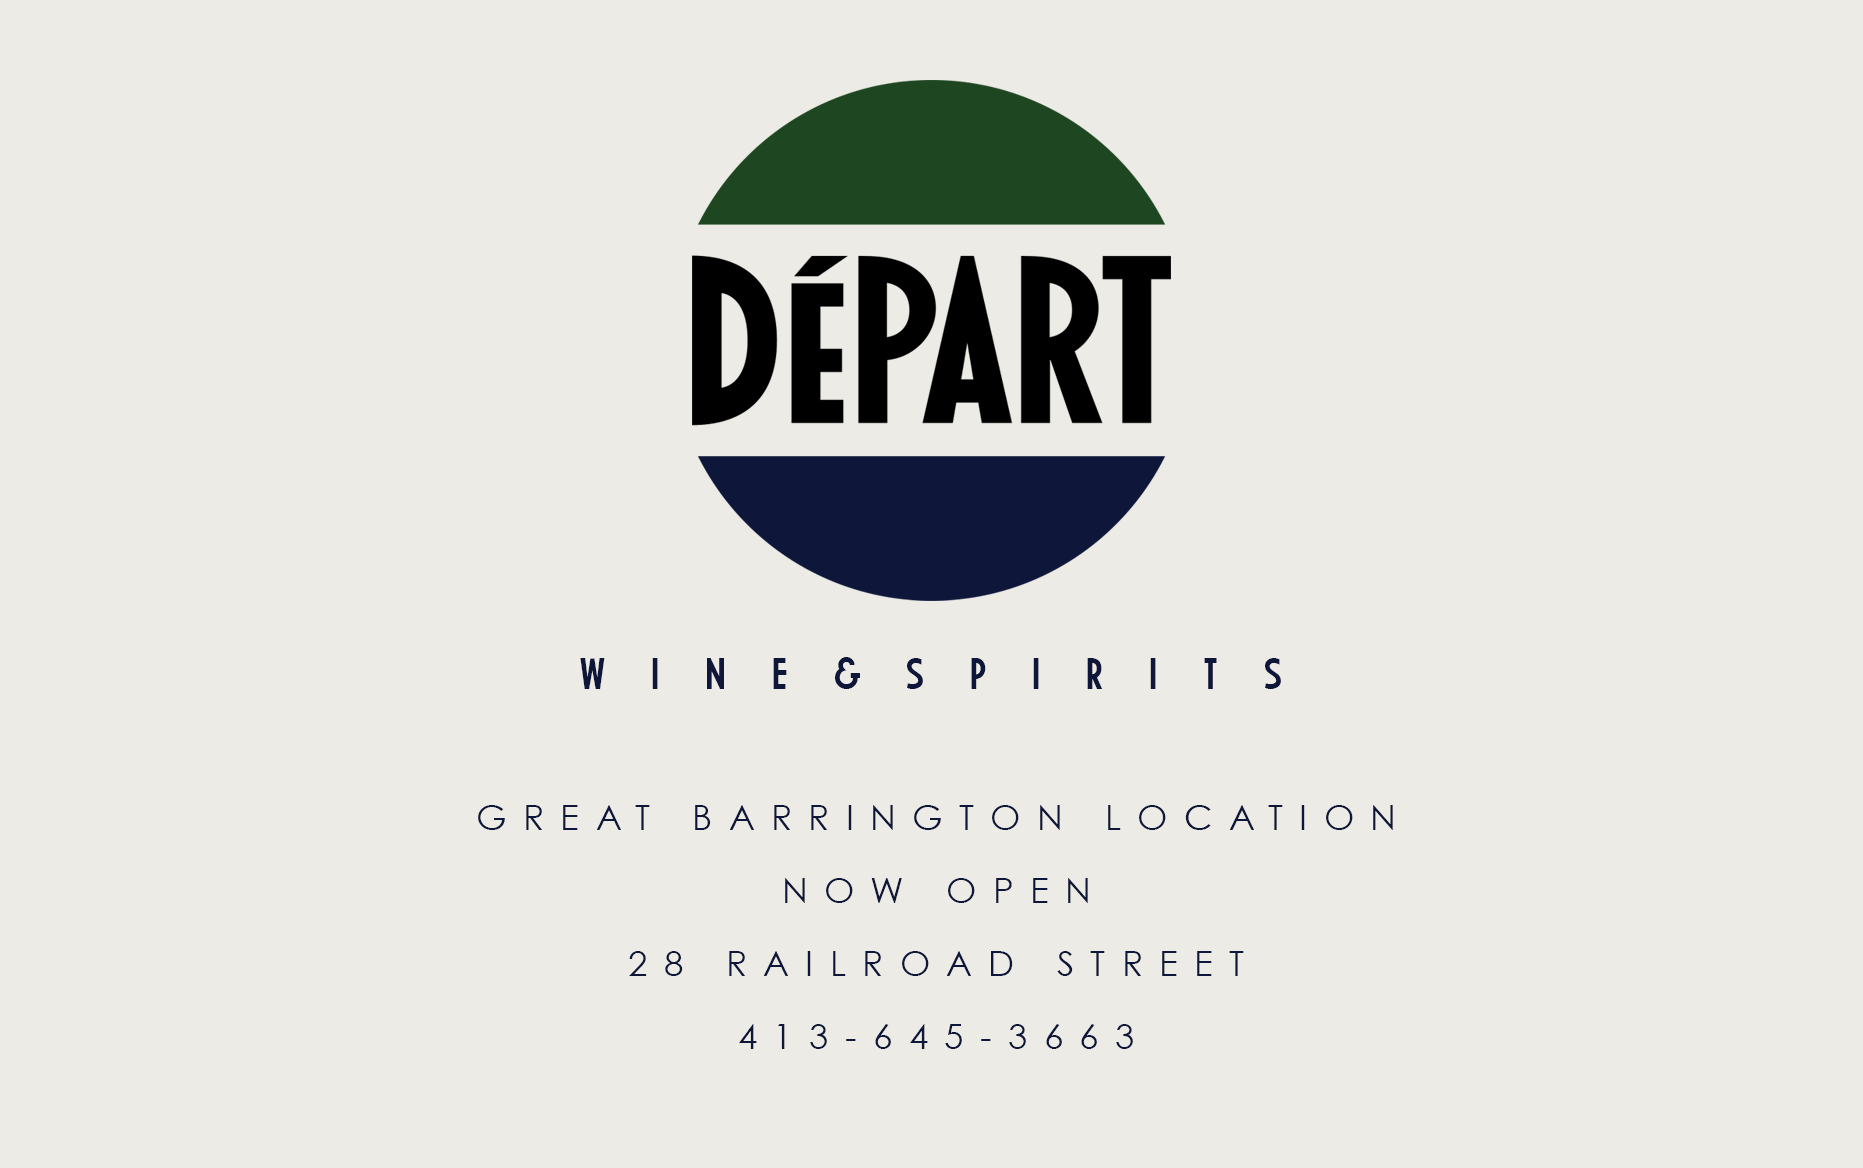 dayparr wine. Great Barrington location now open. 28 Railroad Street. Call us at 413 645 3636